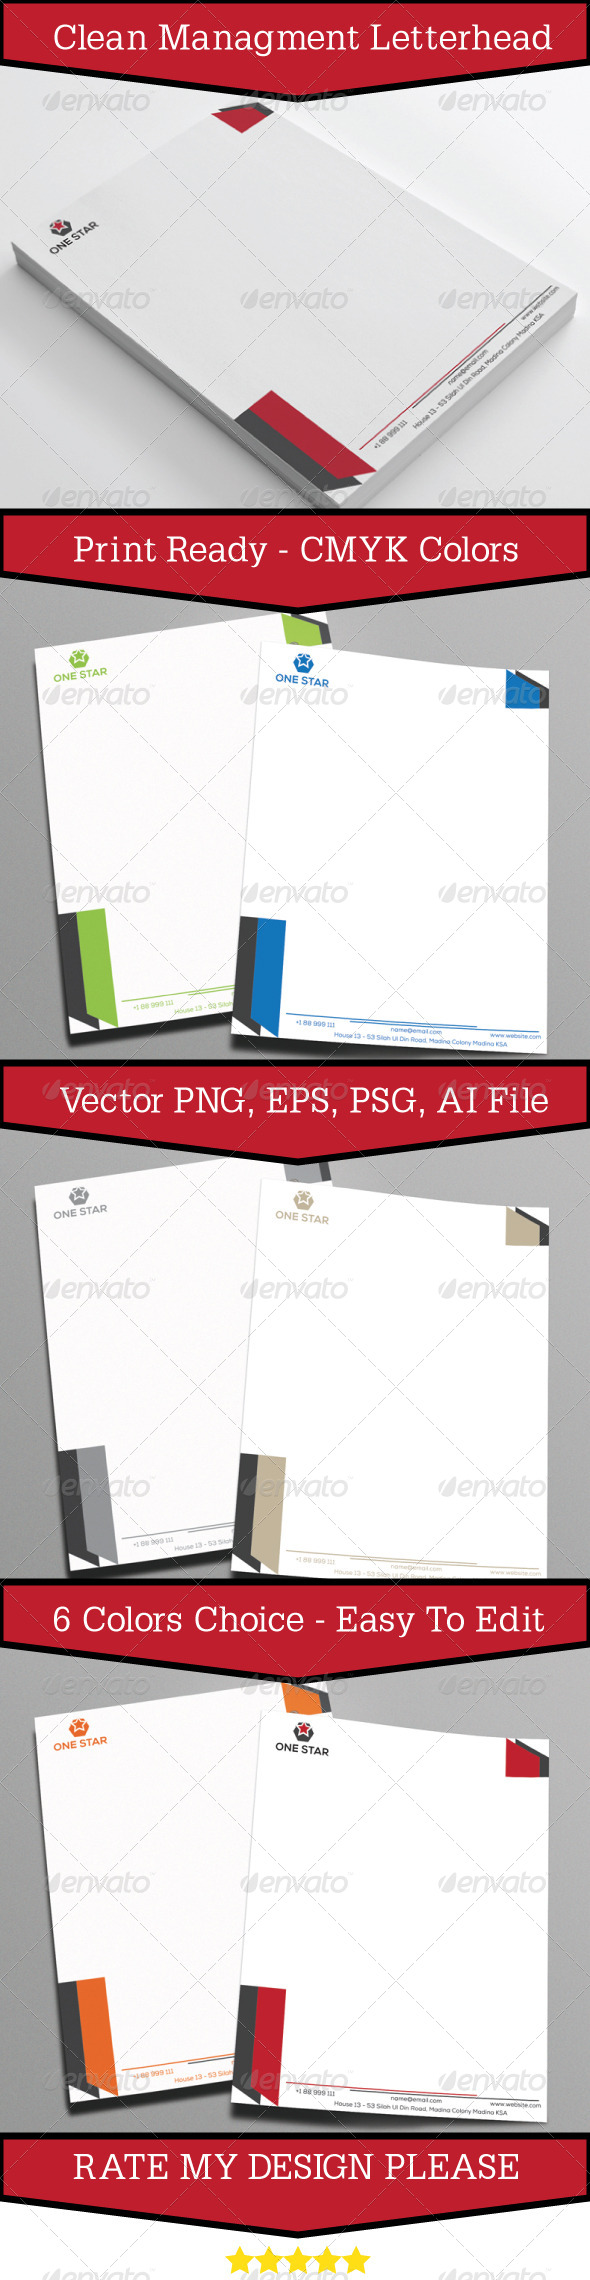 GraphicRiver Clean Management Letterhead 7305961